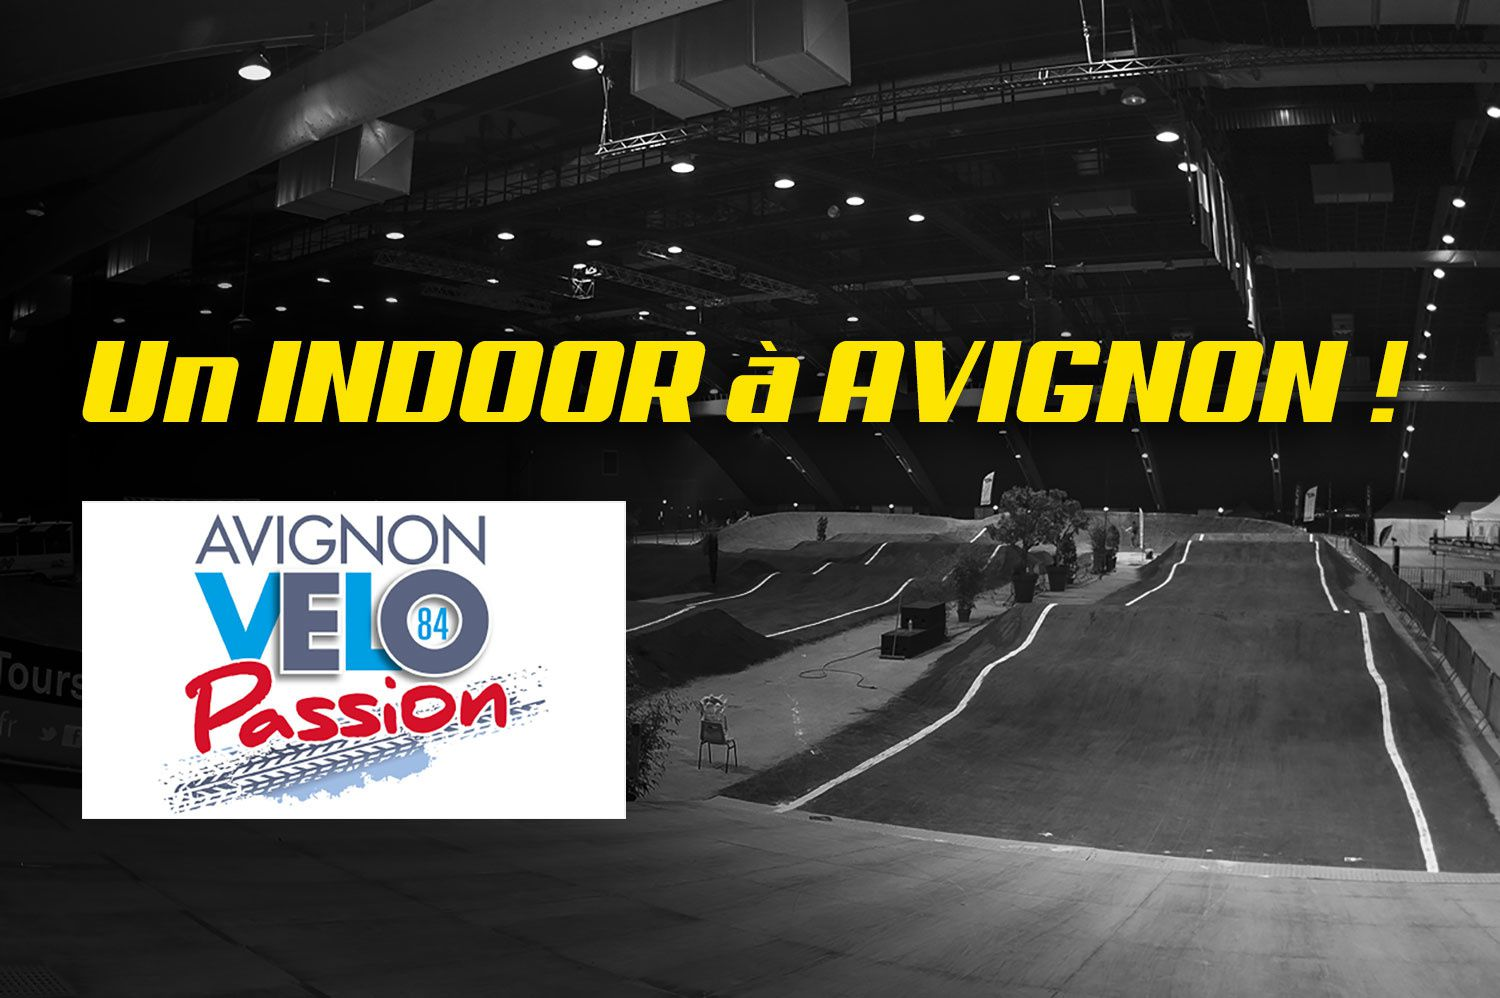 Invitation à l'indoor d'Avignon